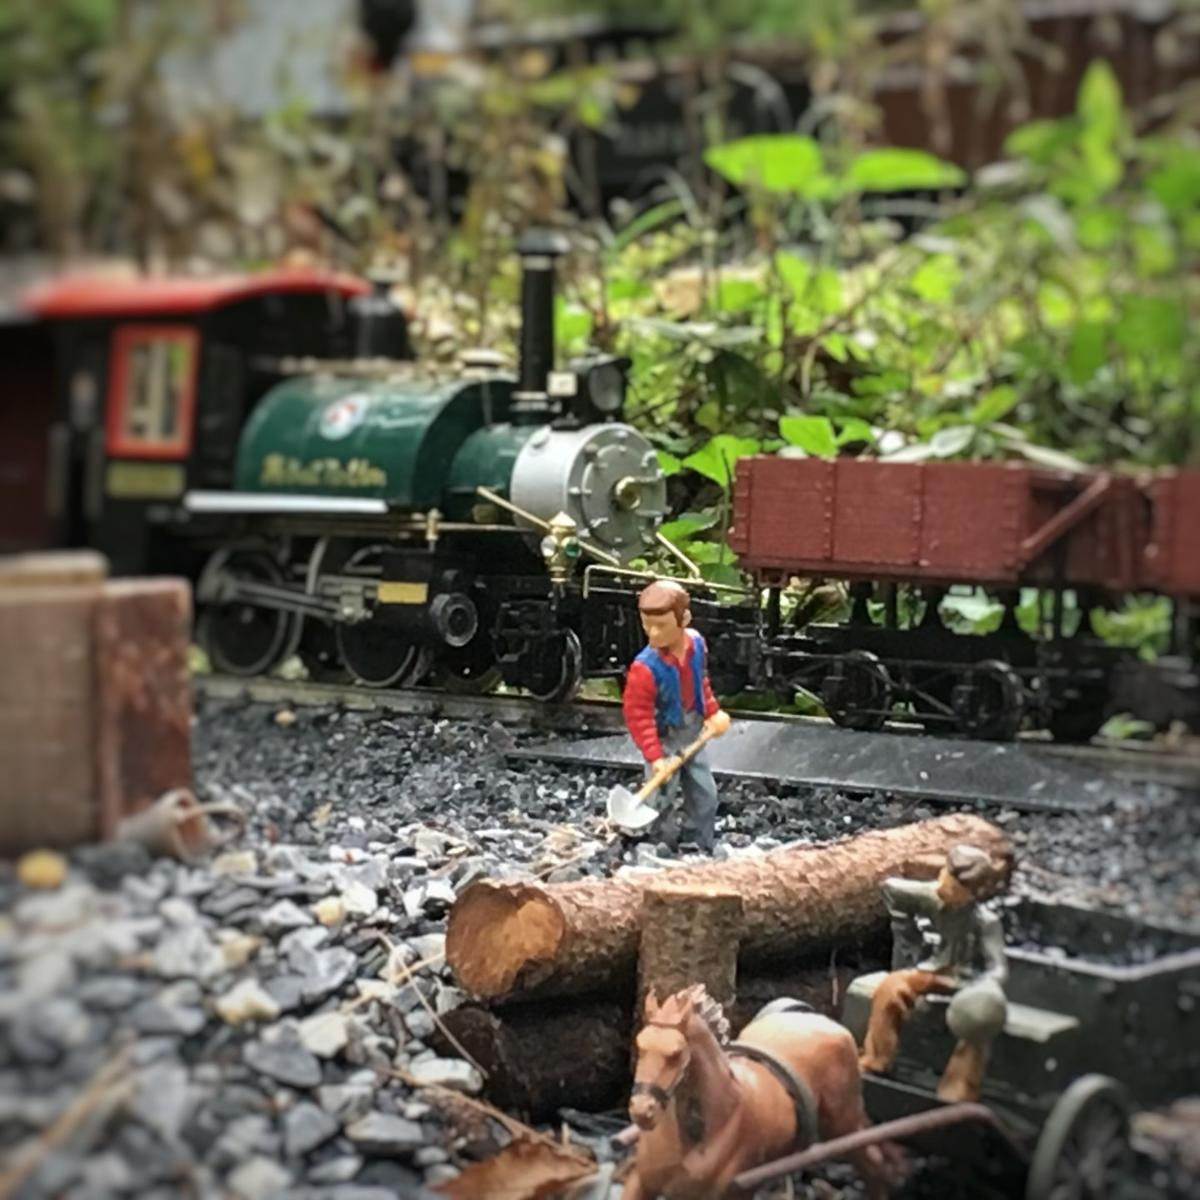 elaborate backyard garden railroads on display in 10th annual